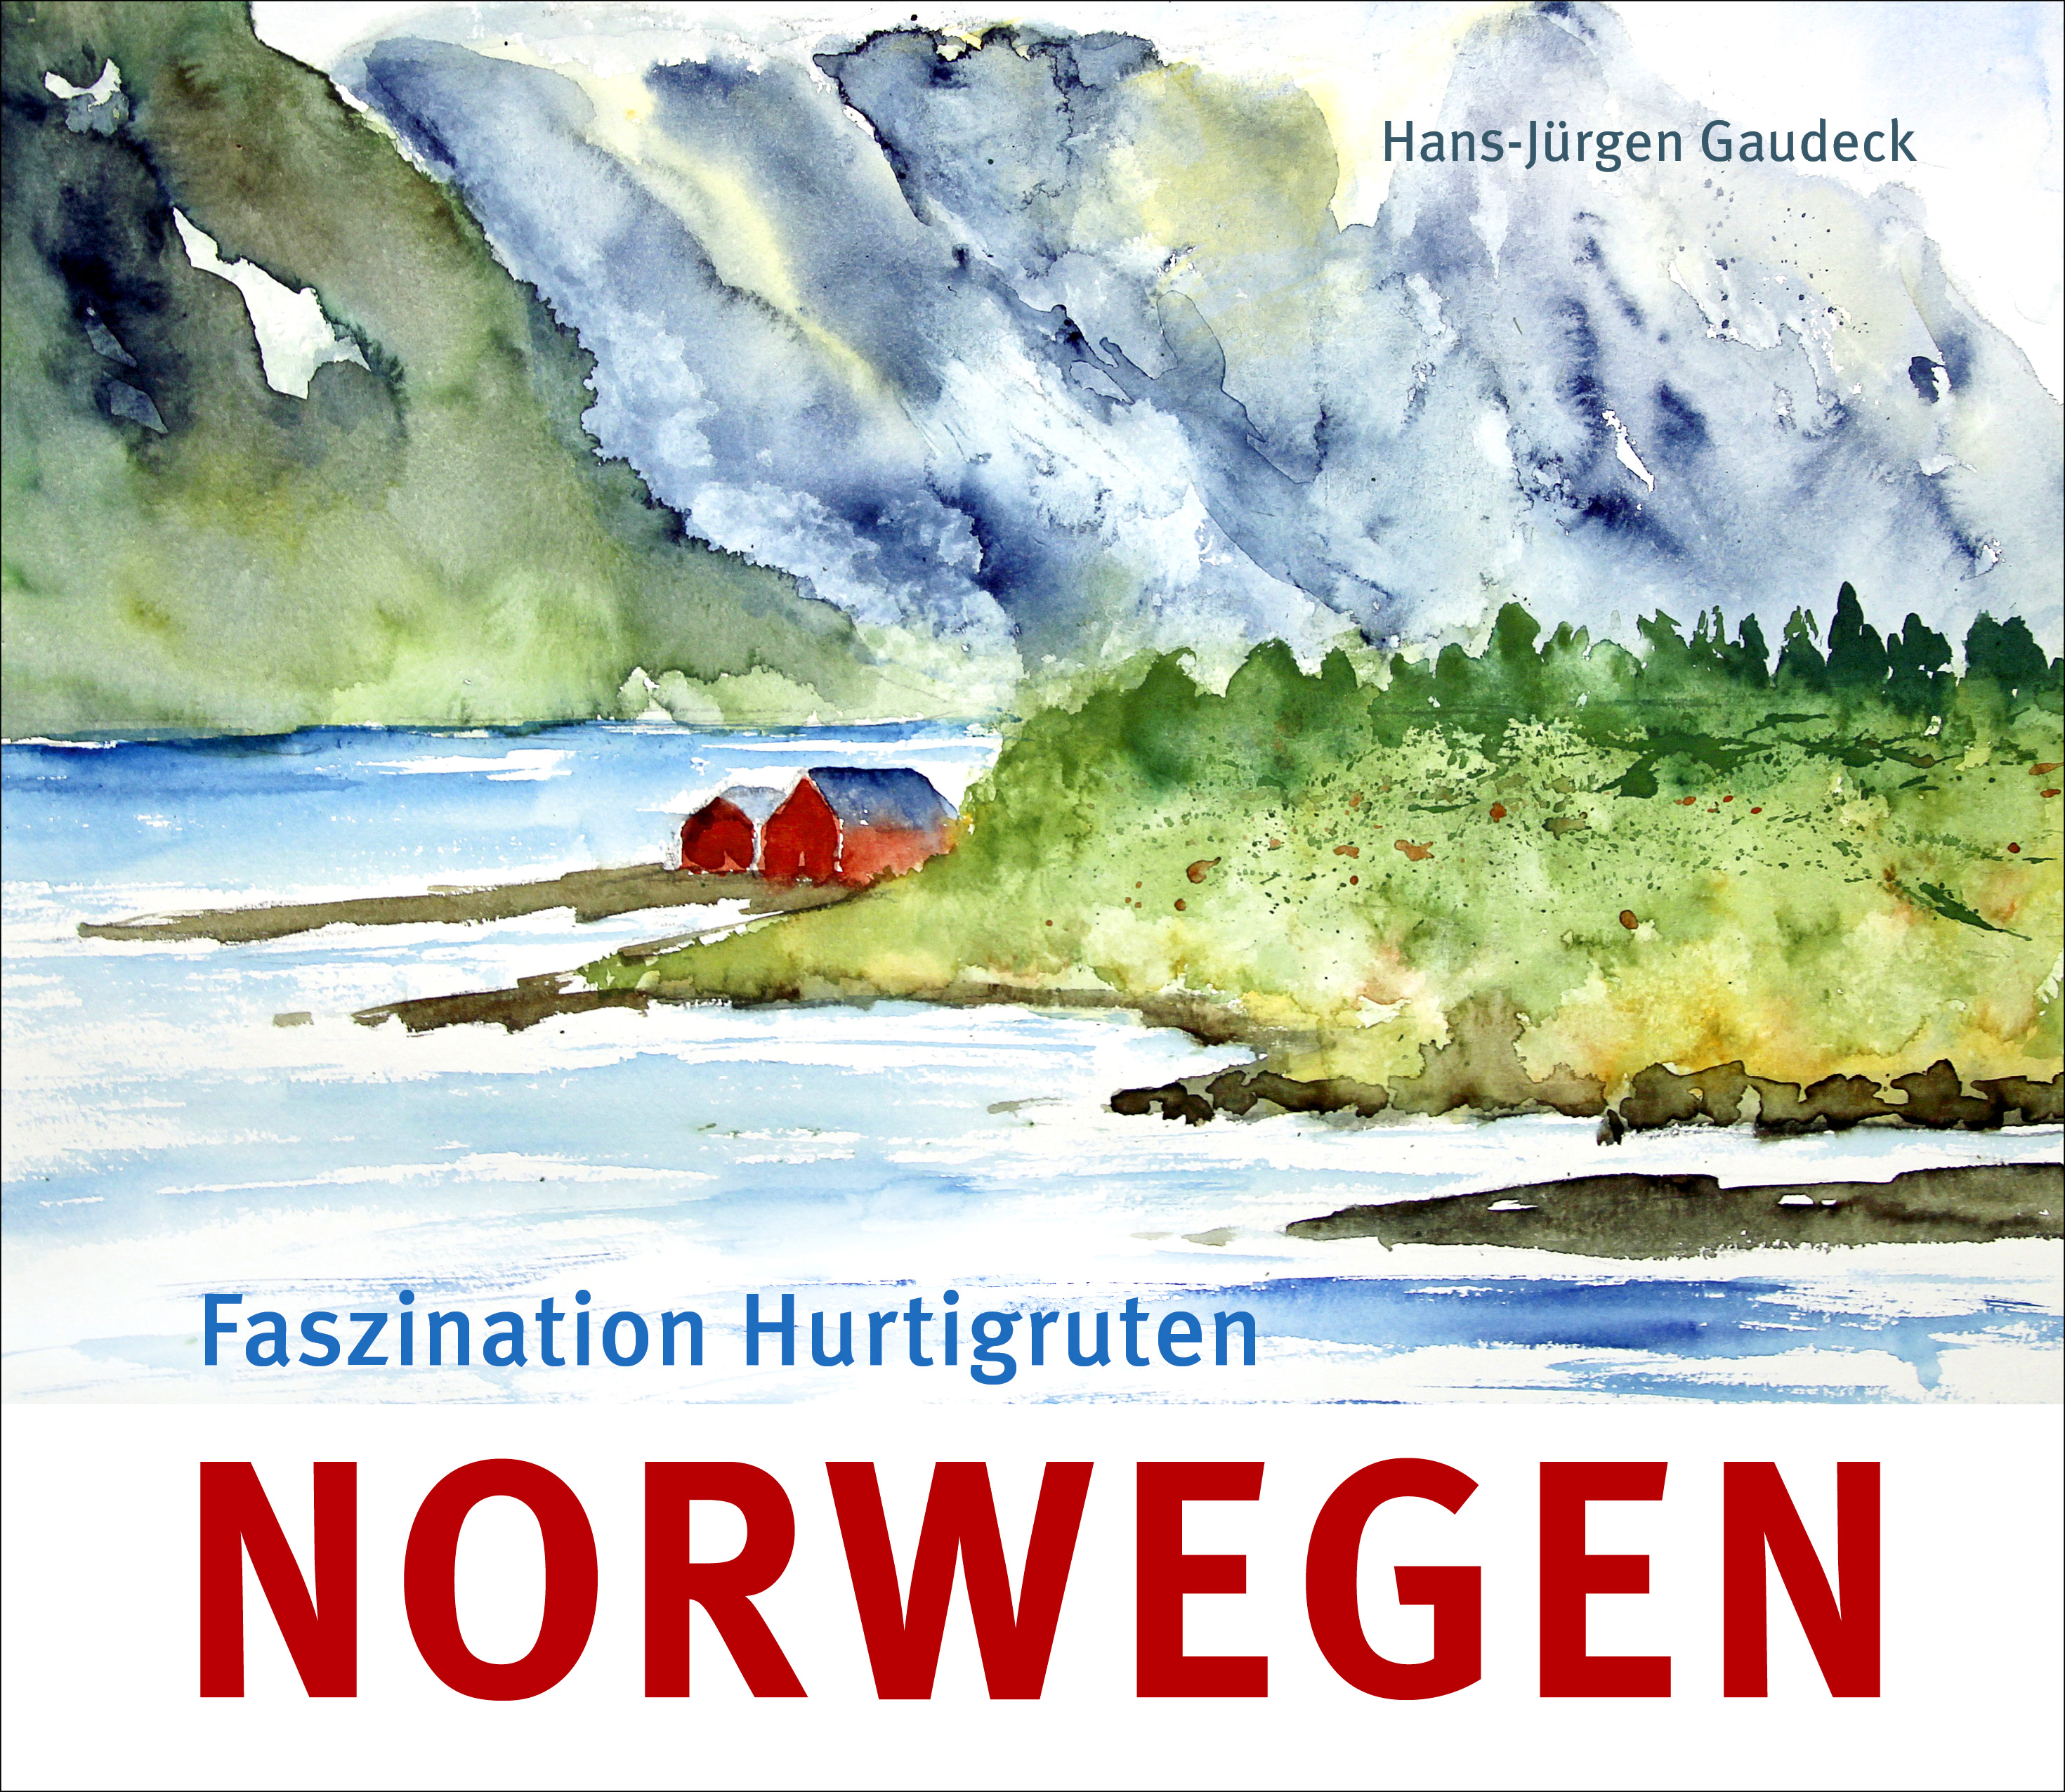 Gaudeck, Norwegen - Faszination Hurtigruten